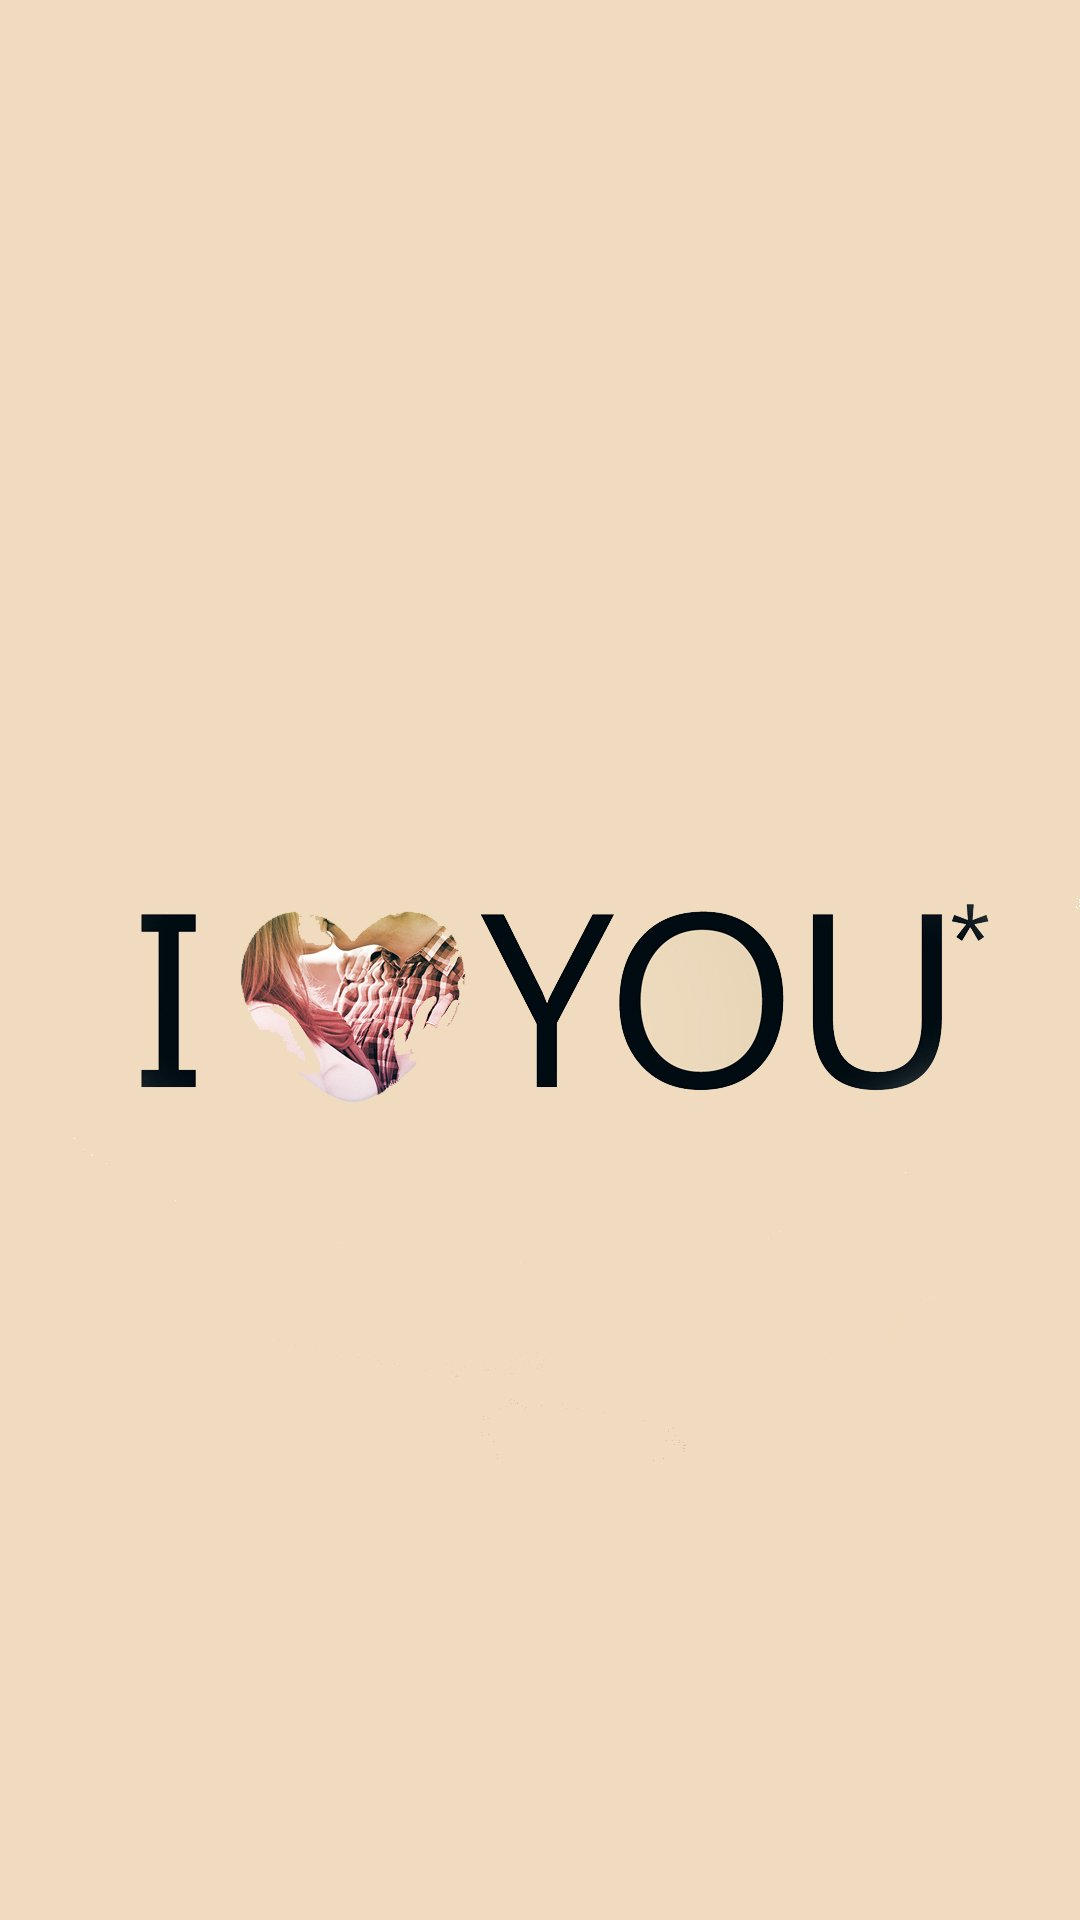 I Love You Typography Pink Heart Android Wallpaper 1080x1920